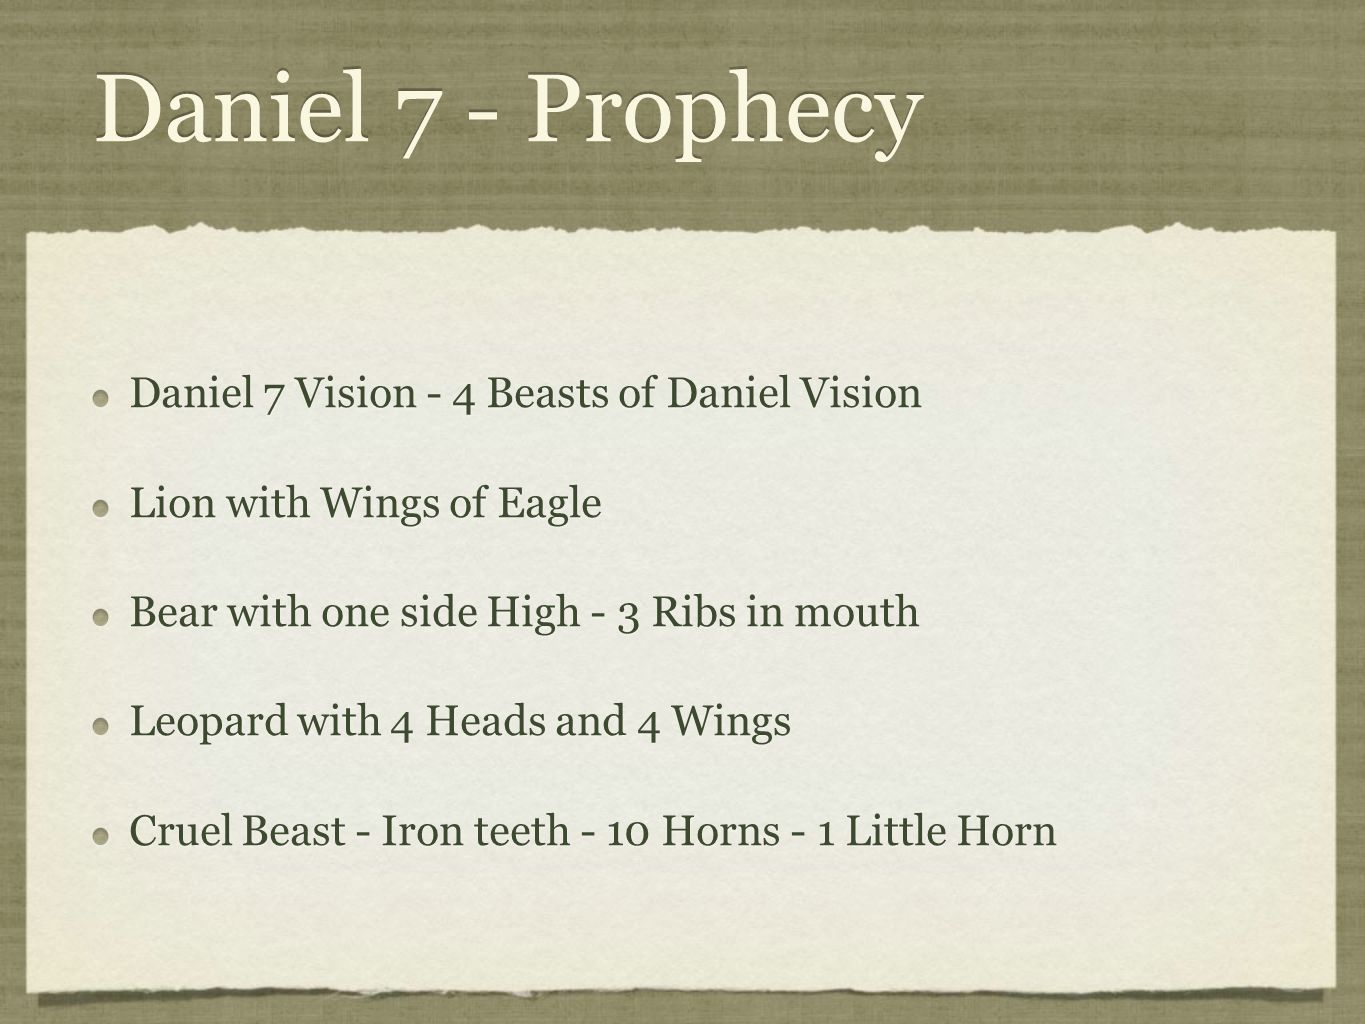 Daniel 7 - Prophecy Daniel 7 Vision - 4 Beasts of Daniel Vision Lion with Wings of Eagle Bear with one side High - 3 Ribs in mouth Leopard with 4 Heads and 4 Wings Cruel Beast - Iron teeth - 10 Horns - 1 Little Horn Daniel 7 Vision - 4 Beasts of Daniel Vision Lion with Wings of Eagle Bear with one side High - 3 Ribs in mouth Leopard with 4 Heads and 4 Wings Cruel Beast - Iron teeth - 10 Horns - 1 Little Horn